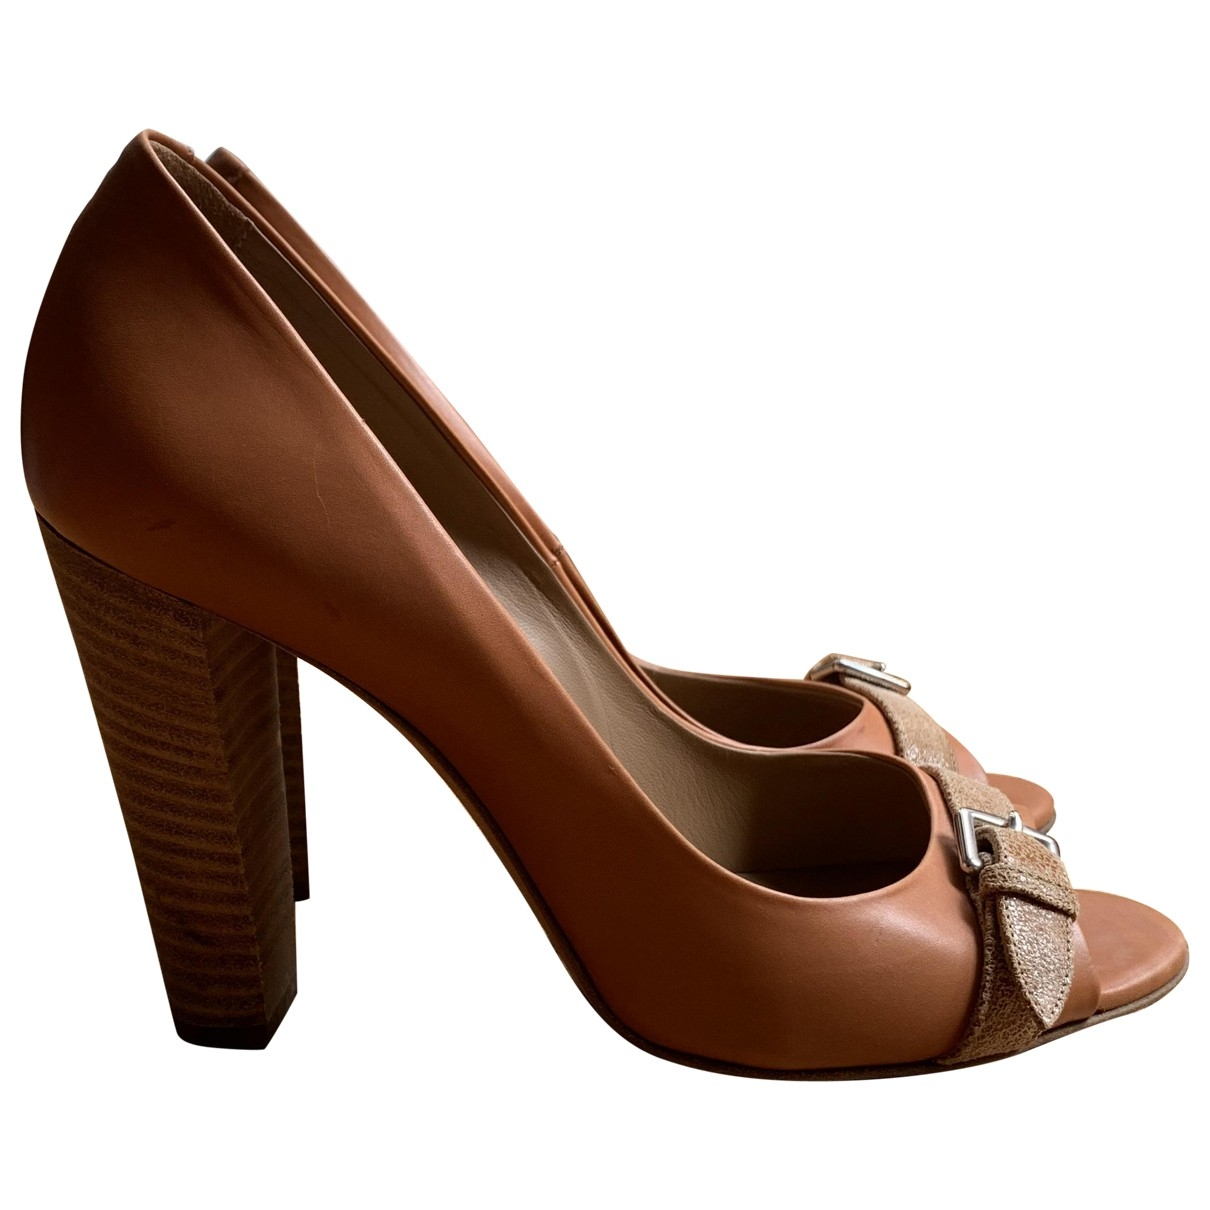 Hermès \N Camel Leather Heels for Women 38.5 EU